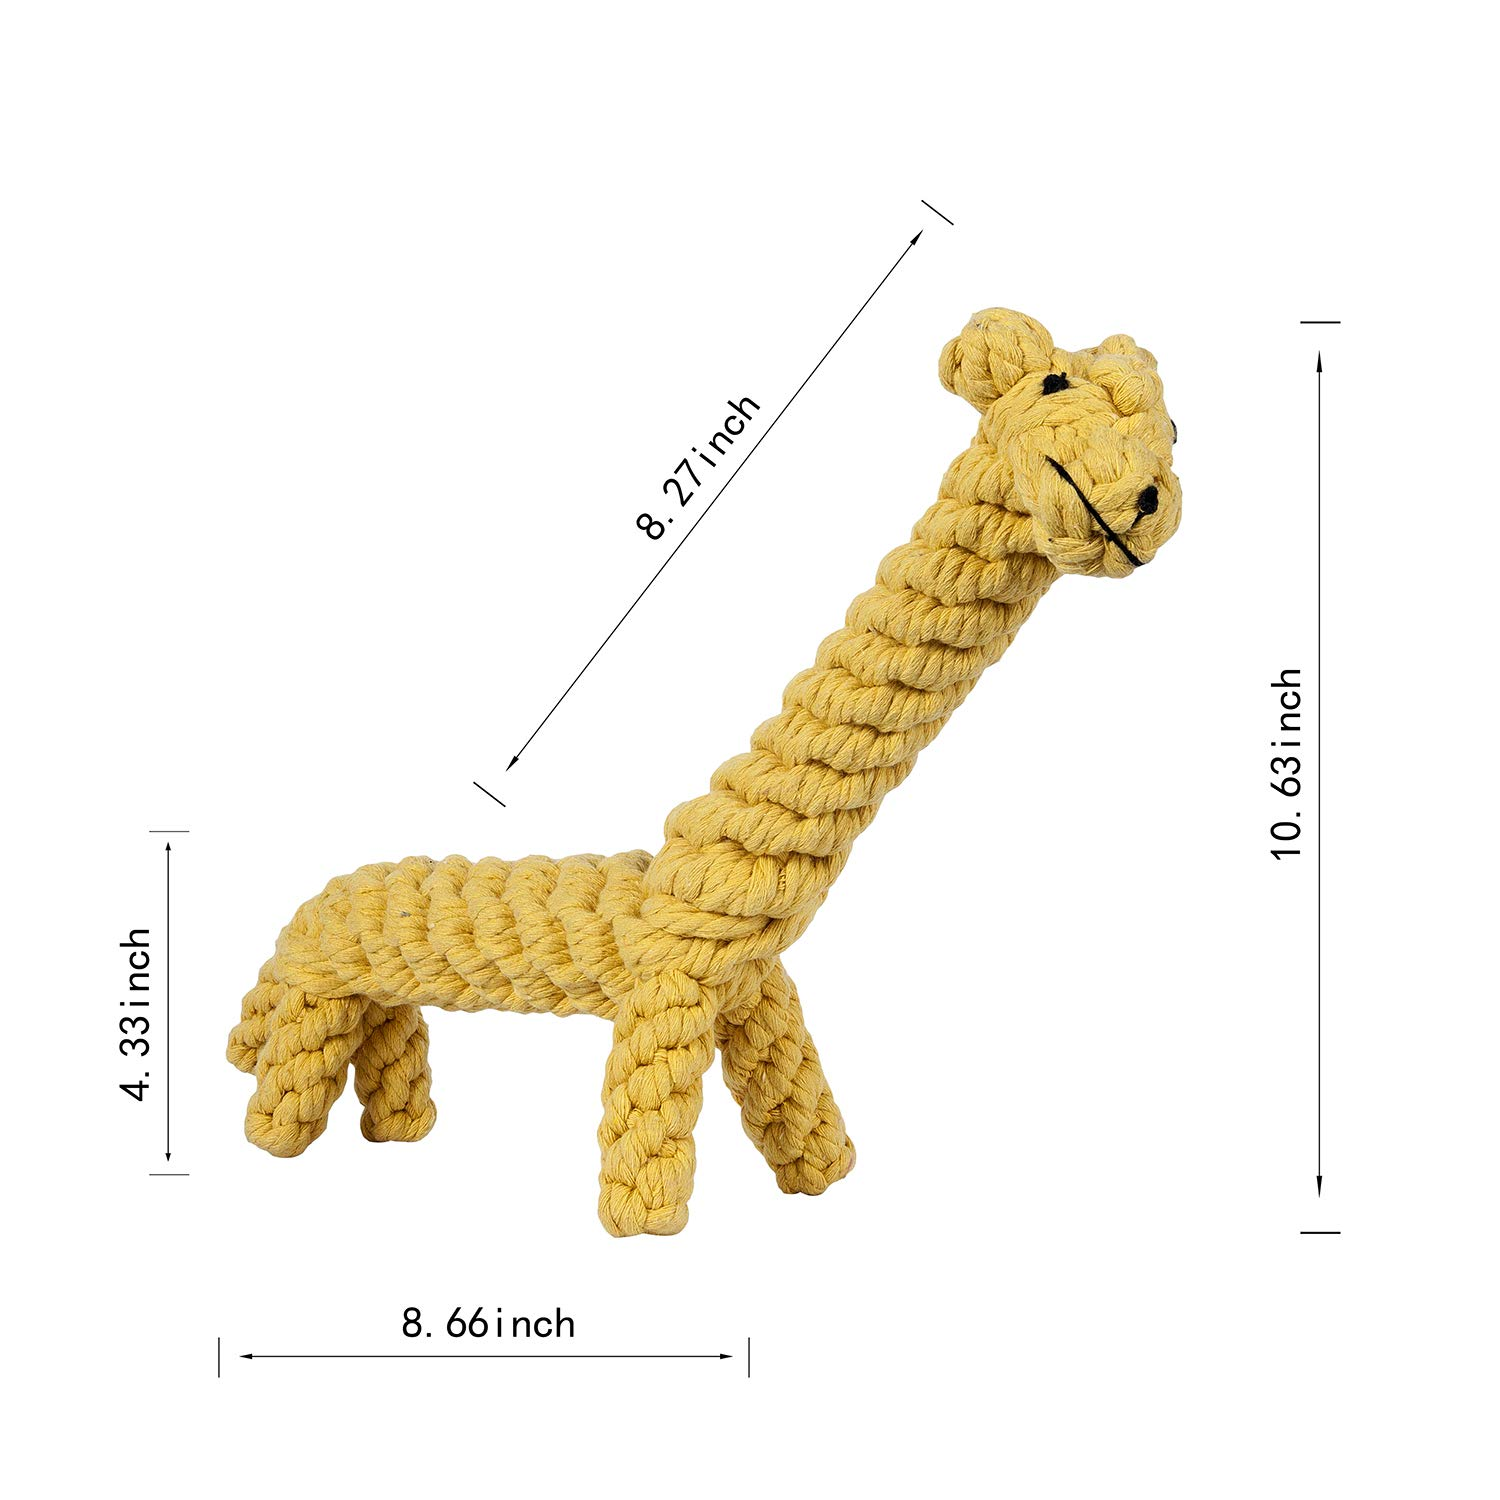 color 8 OneSize color 8 OneSize Dog Chew Toy Small to Medium Sized Dogs Interactive Pet Play Training Toy Animal Design Big Giraffe